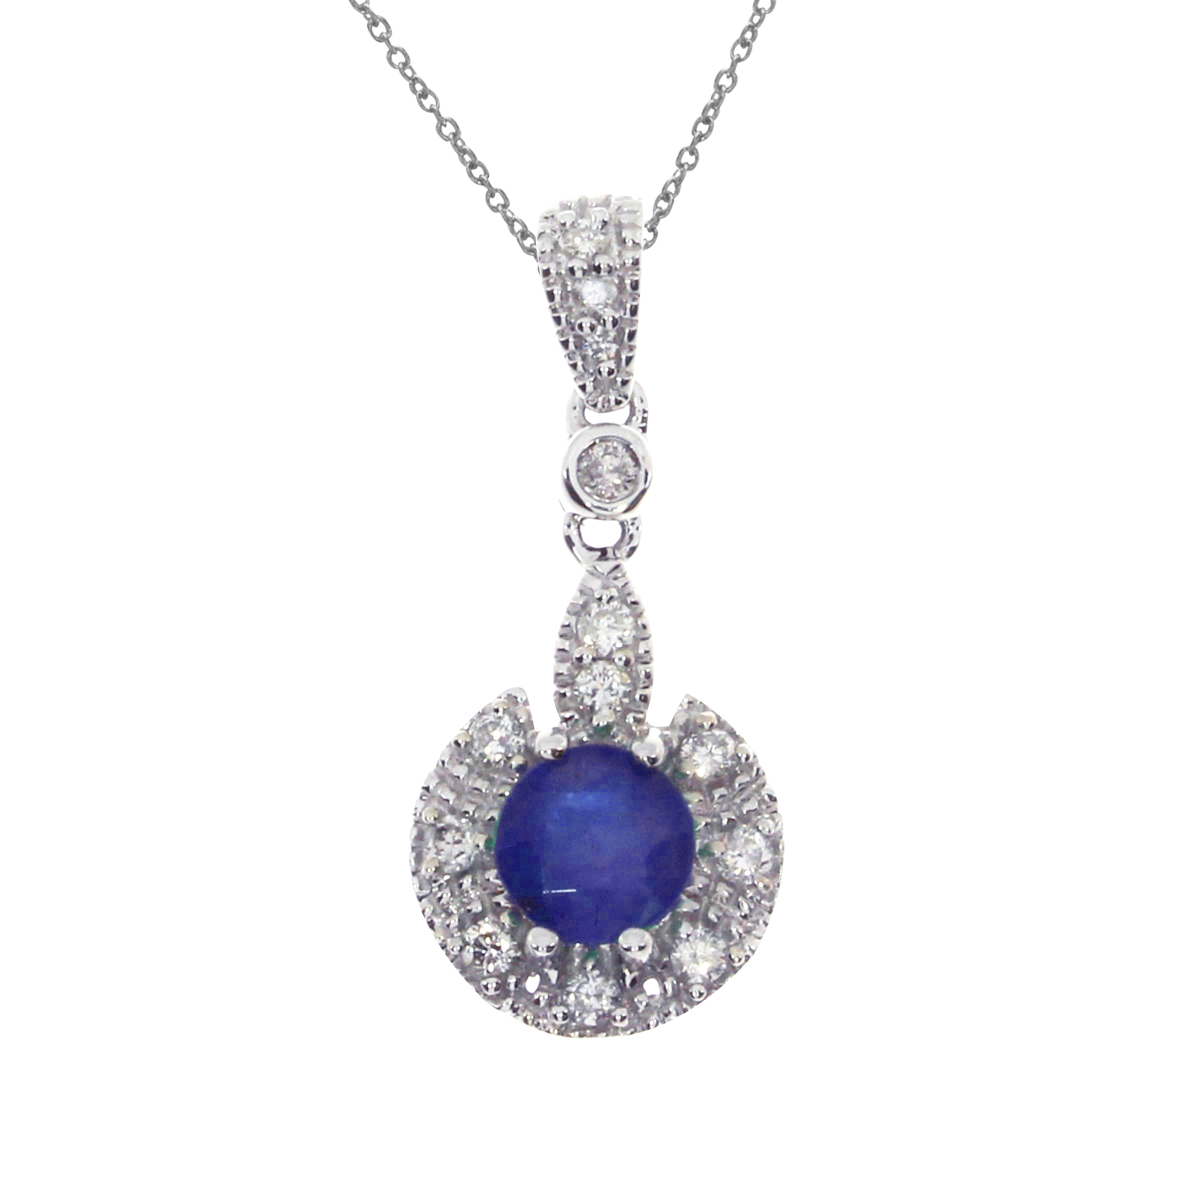 5 mm round genuine sapphires pendant set in 14k white gold with .16 ct diamonds.